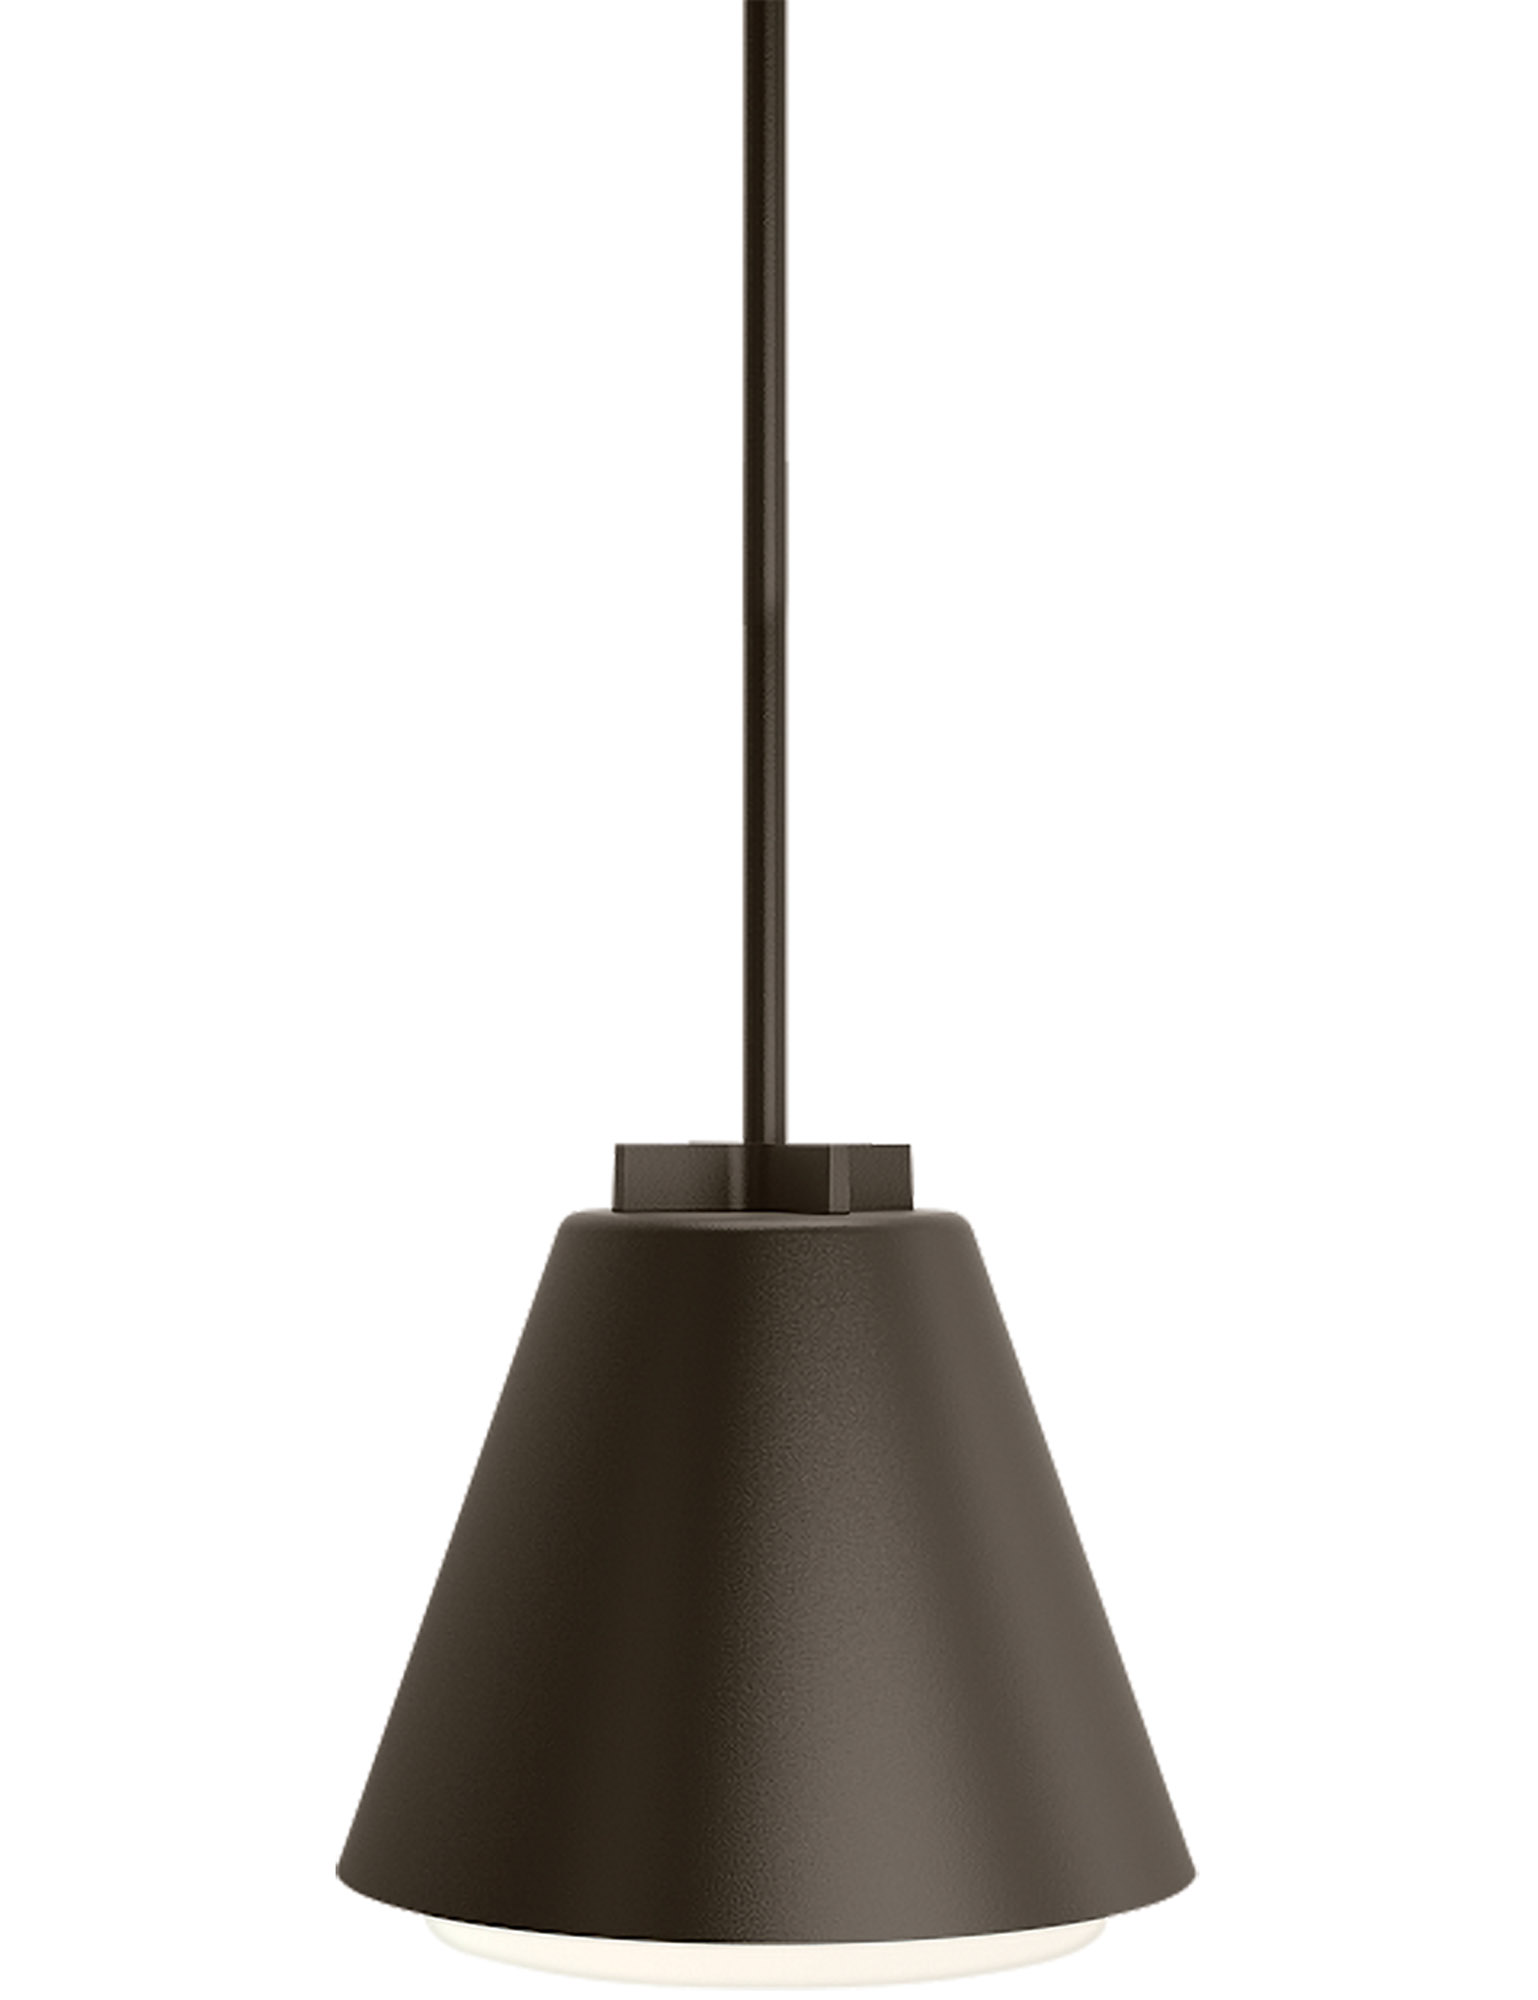 An outdoor pendent from Circa Lighting.